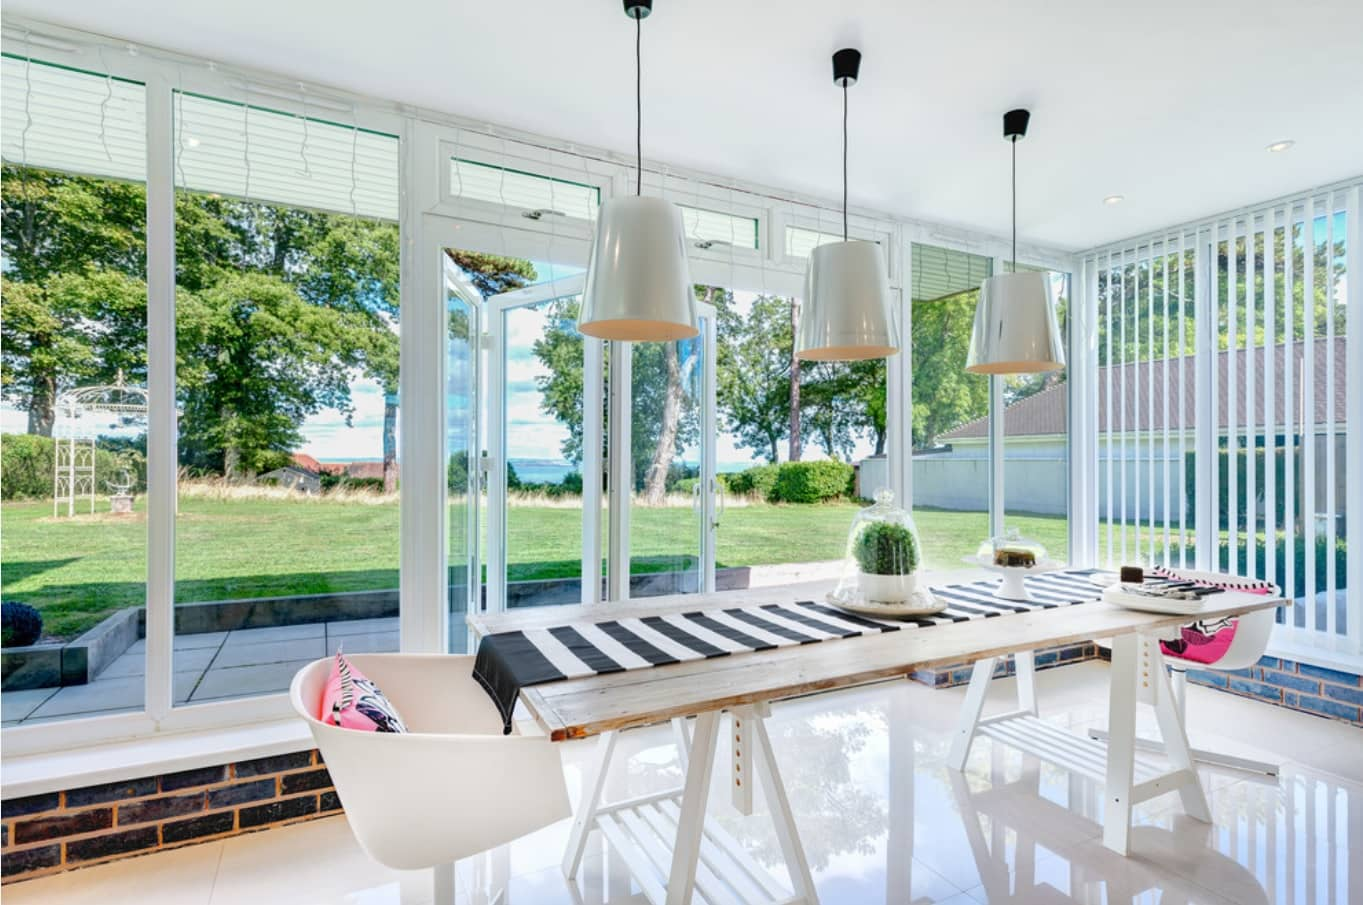 Saving Up with Window Blinds. Spacious modern style dining room with panoramic windows and glass door in white